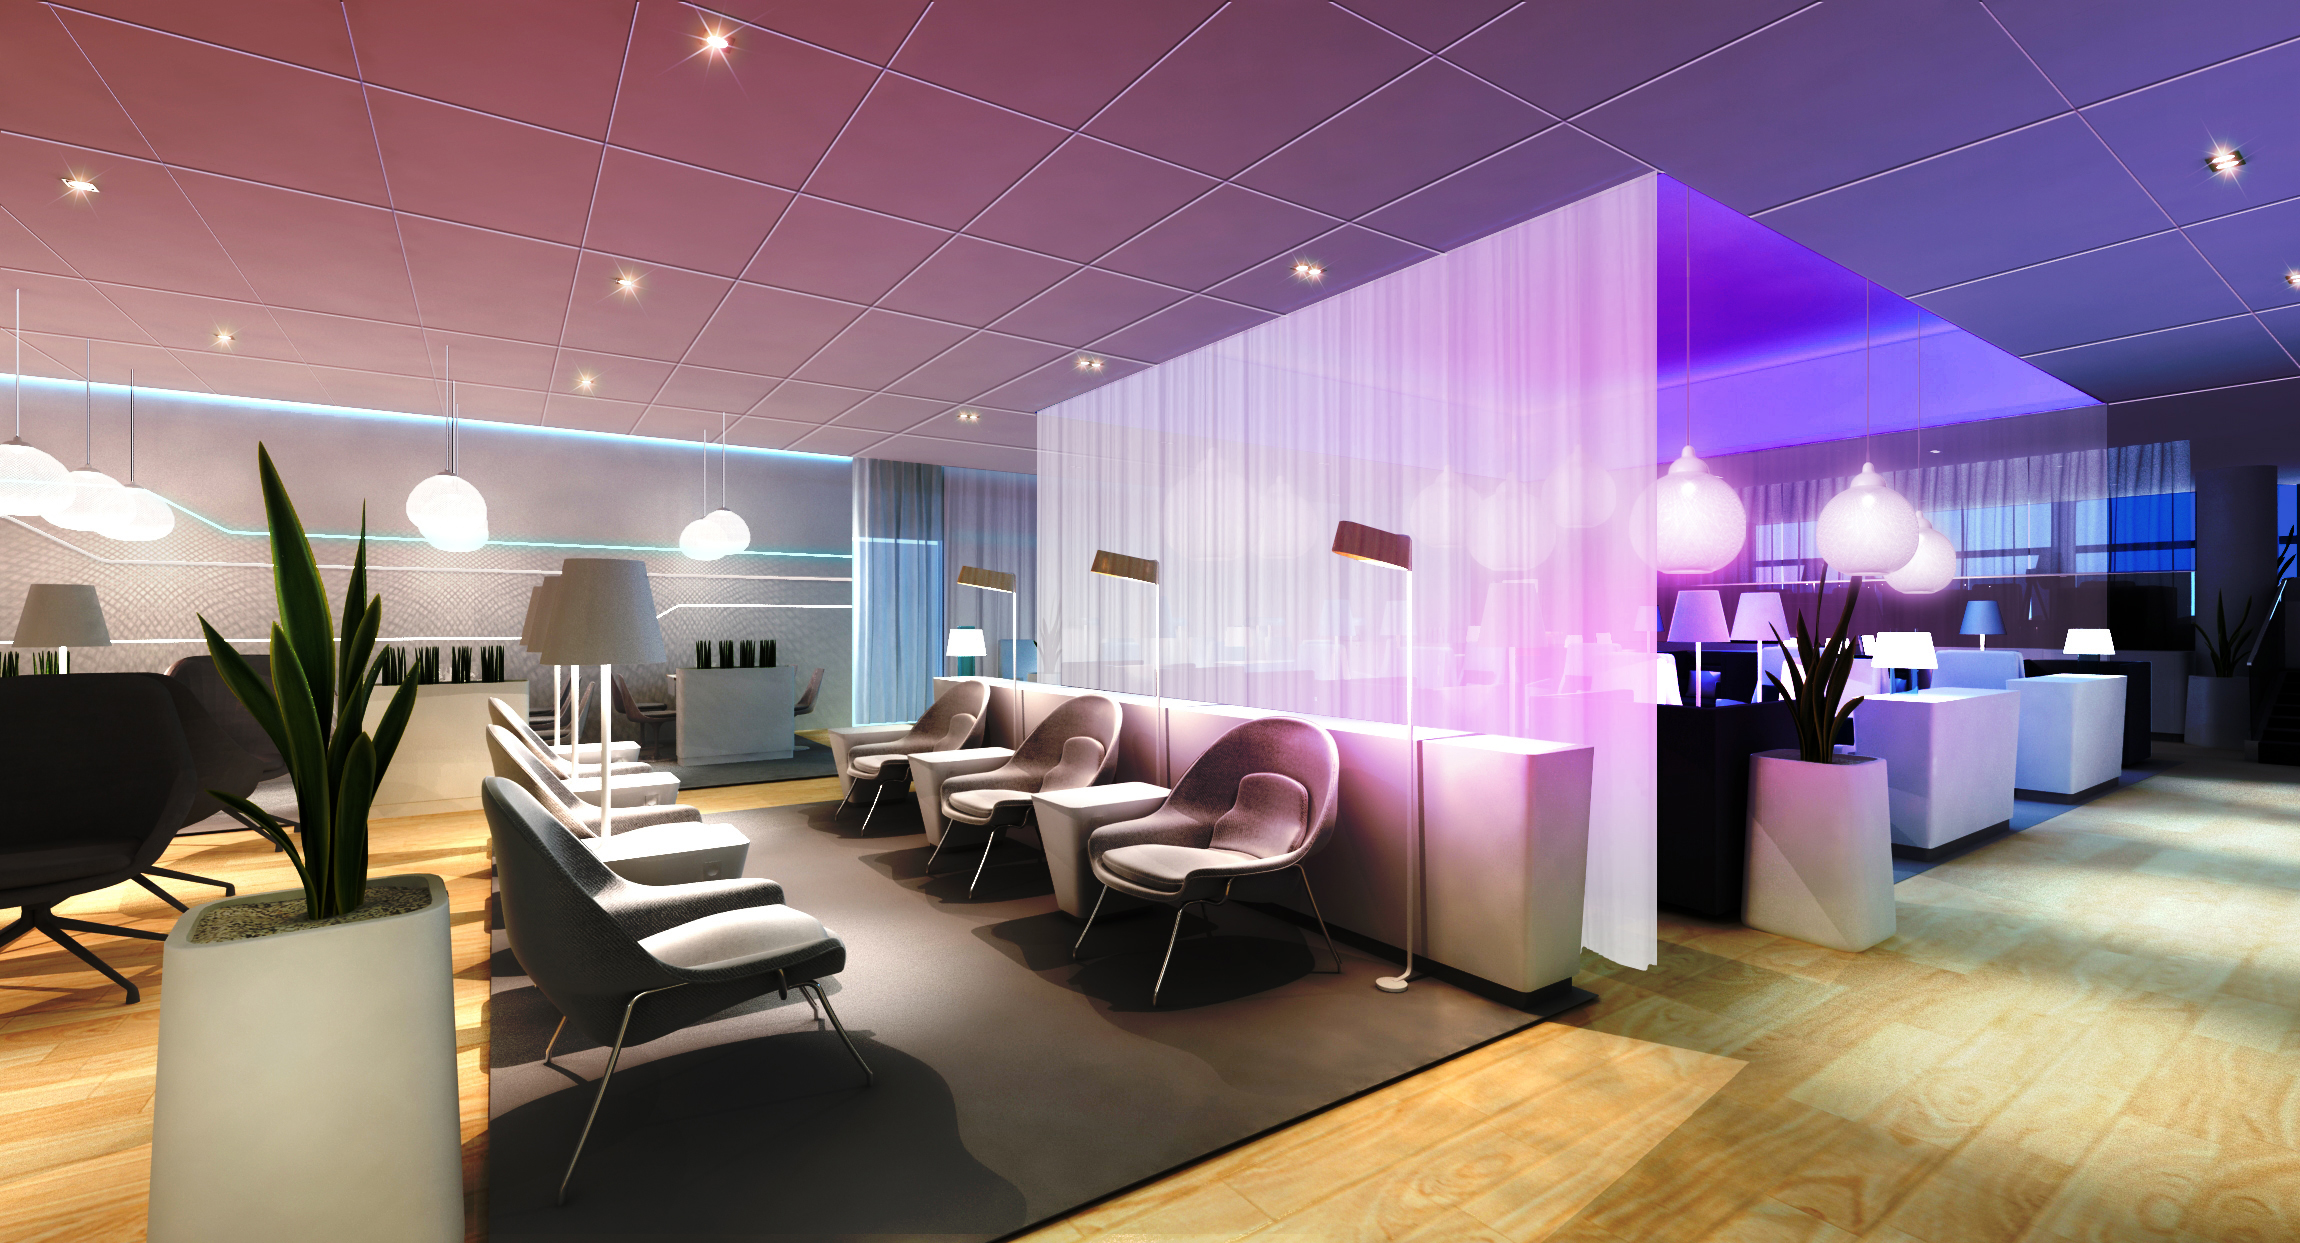 Premium lounge with a sauna has to be finnair thedesignair for Lounge area ideas